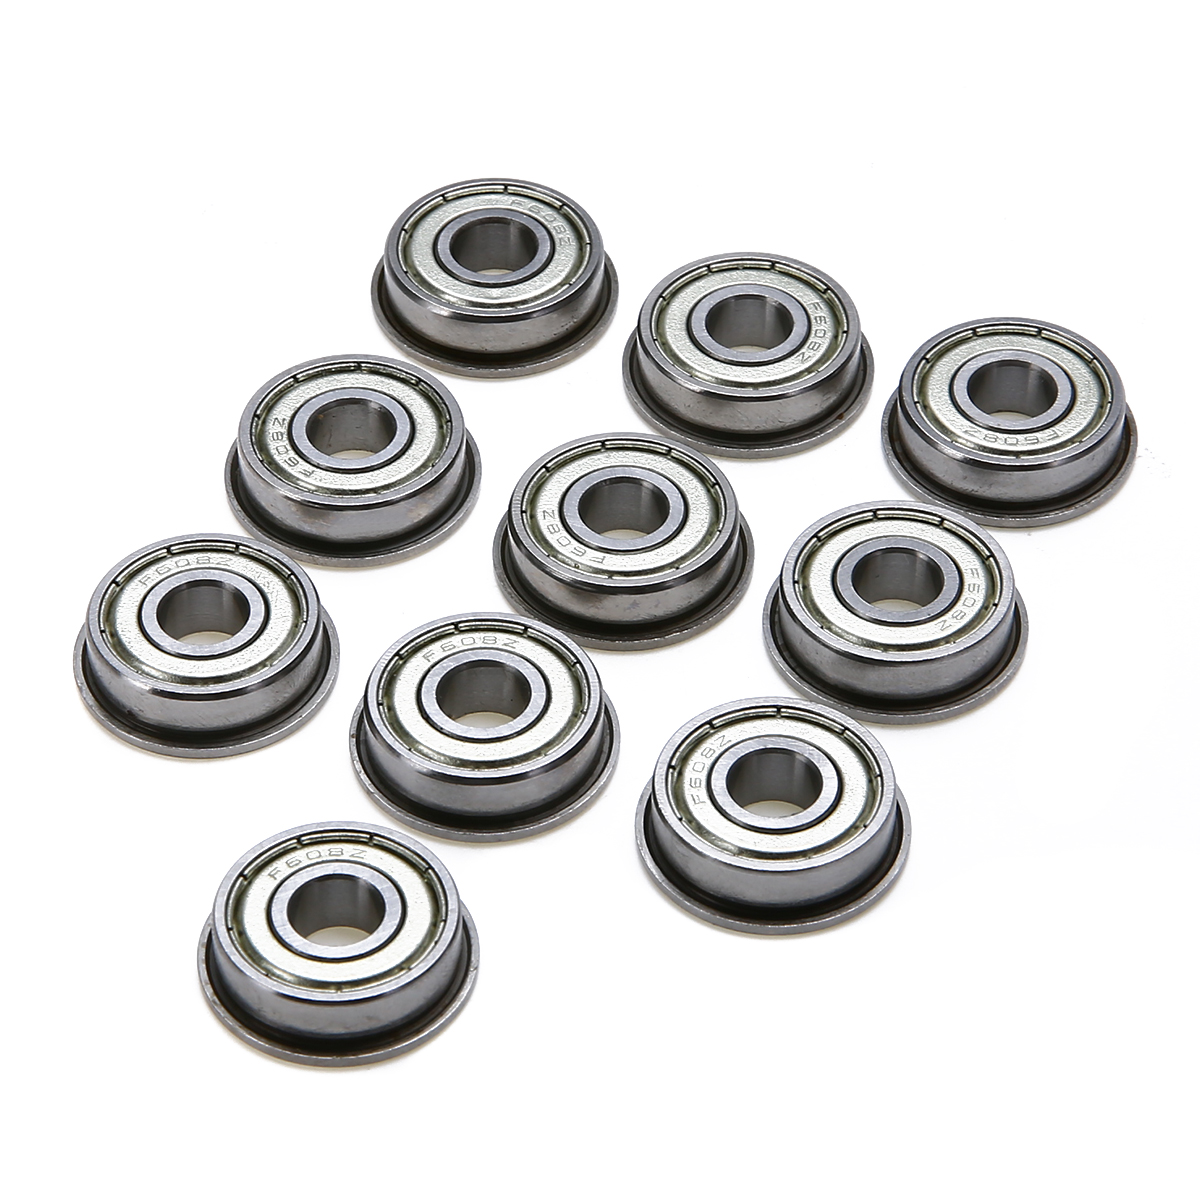 Mayitr 10pcs/lot Mini Flange Ball Bearing Metric F608ZZ Deep Groove Ball Bearings For Mechanical Hardware 8mm*22mm*7mm 5pcs lot f6002zz f6002 zz 15x32x9mm metal shielded flange deep groove ball bearing